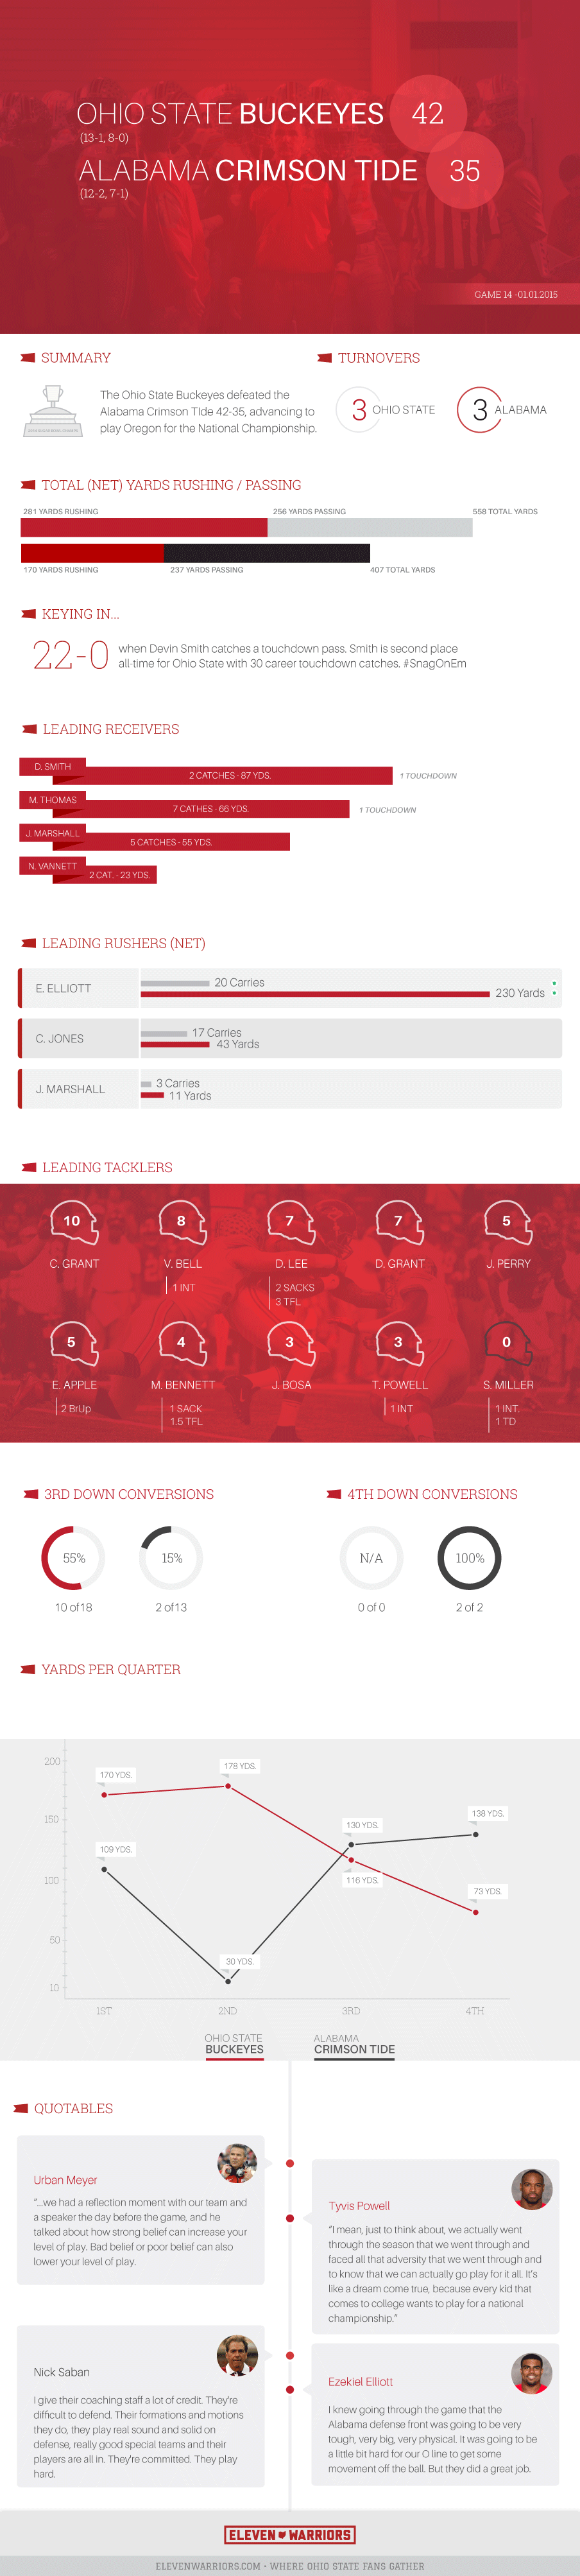 Ohio State - Alabama Infographic